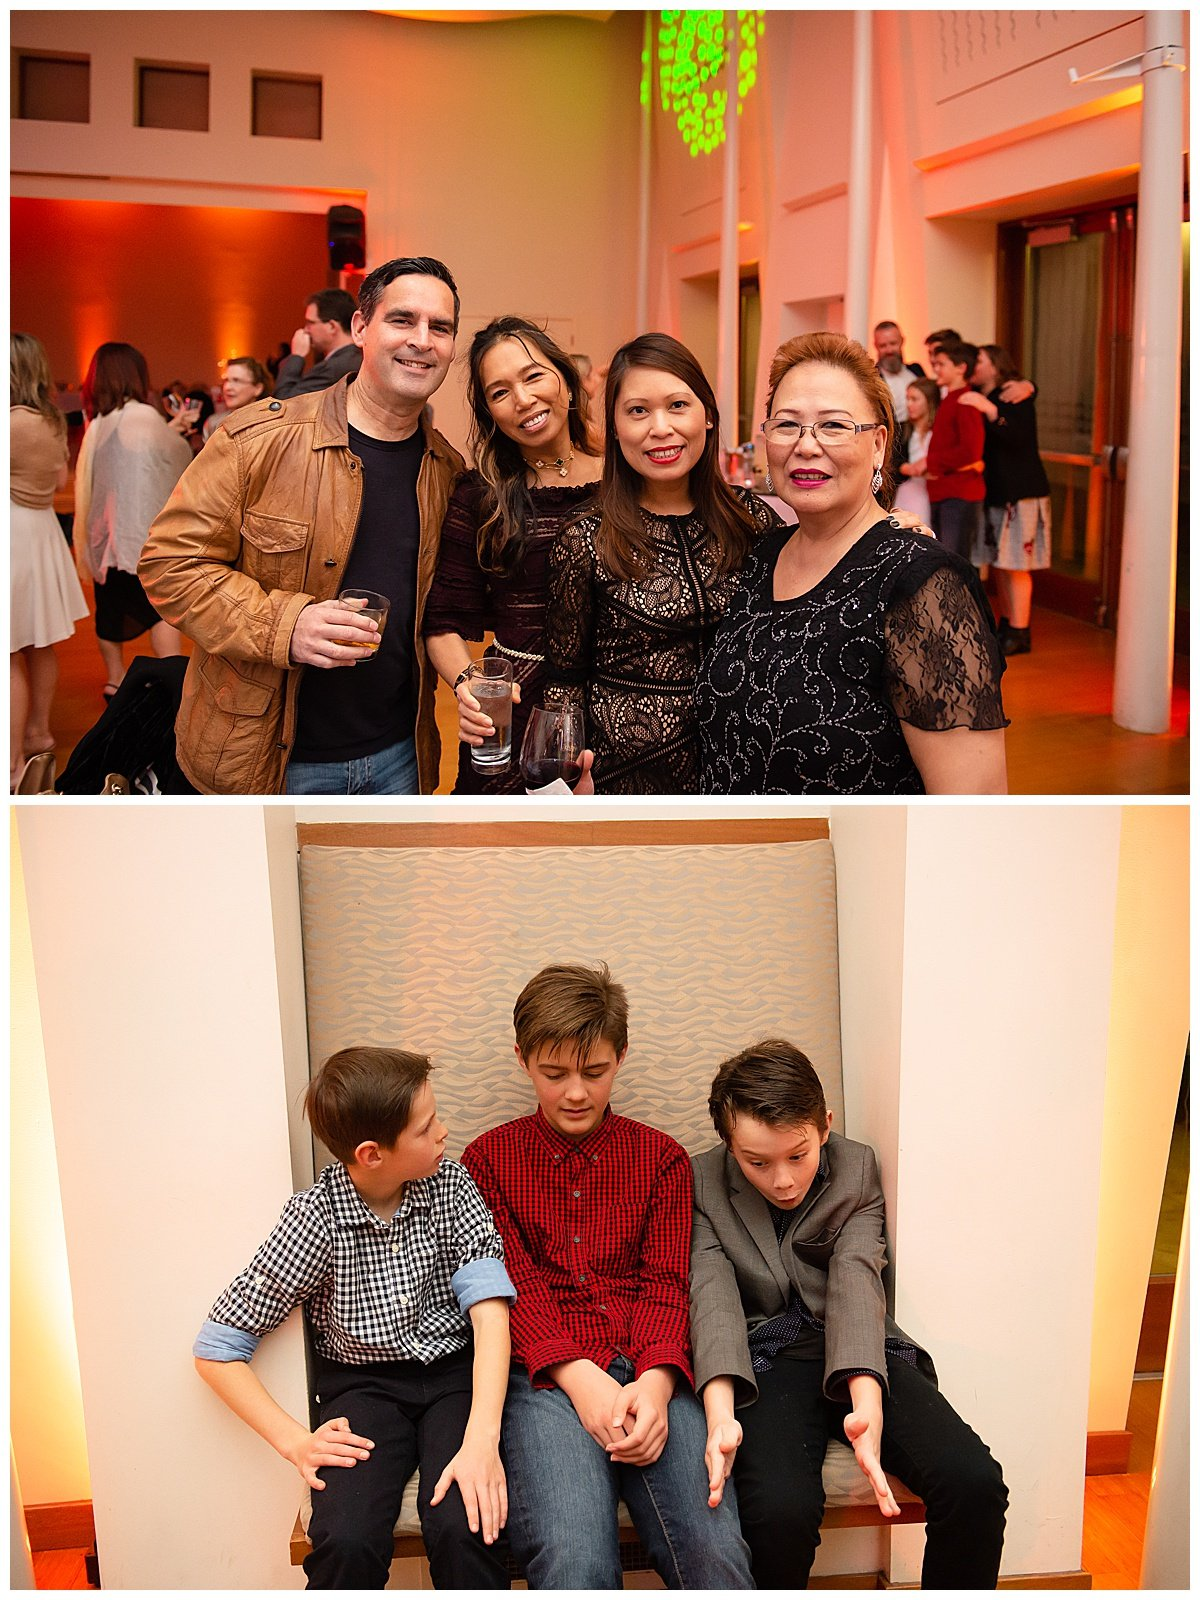 Kids and guests hanging out at Bay Area Bar and Bat Mitzvah photography